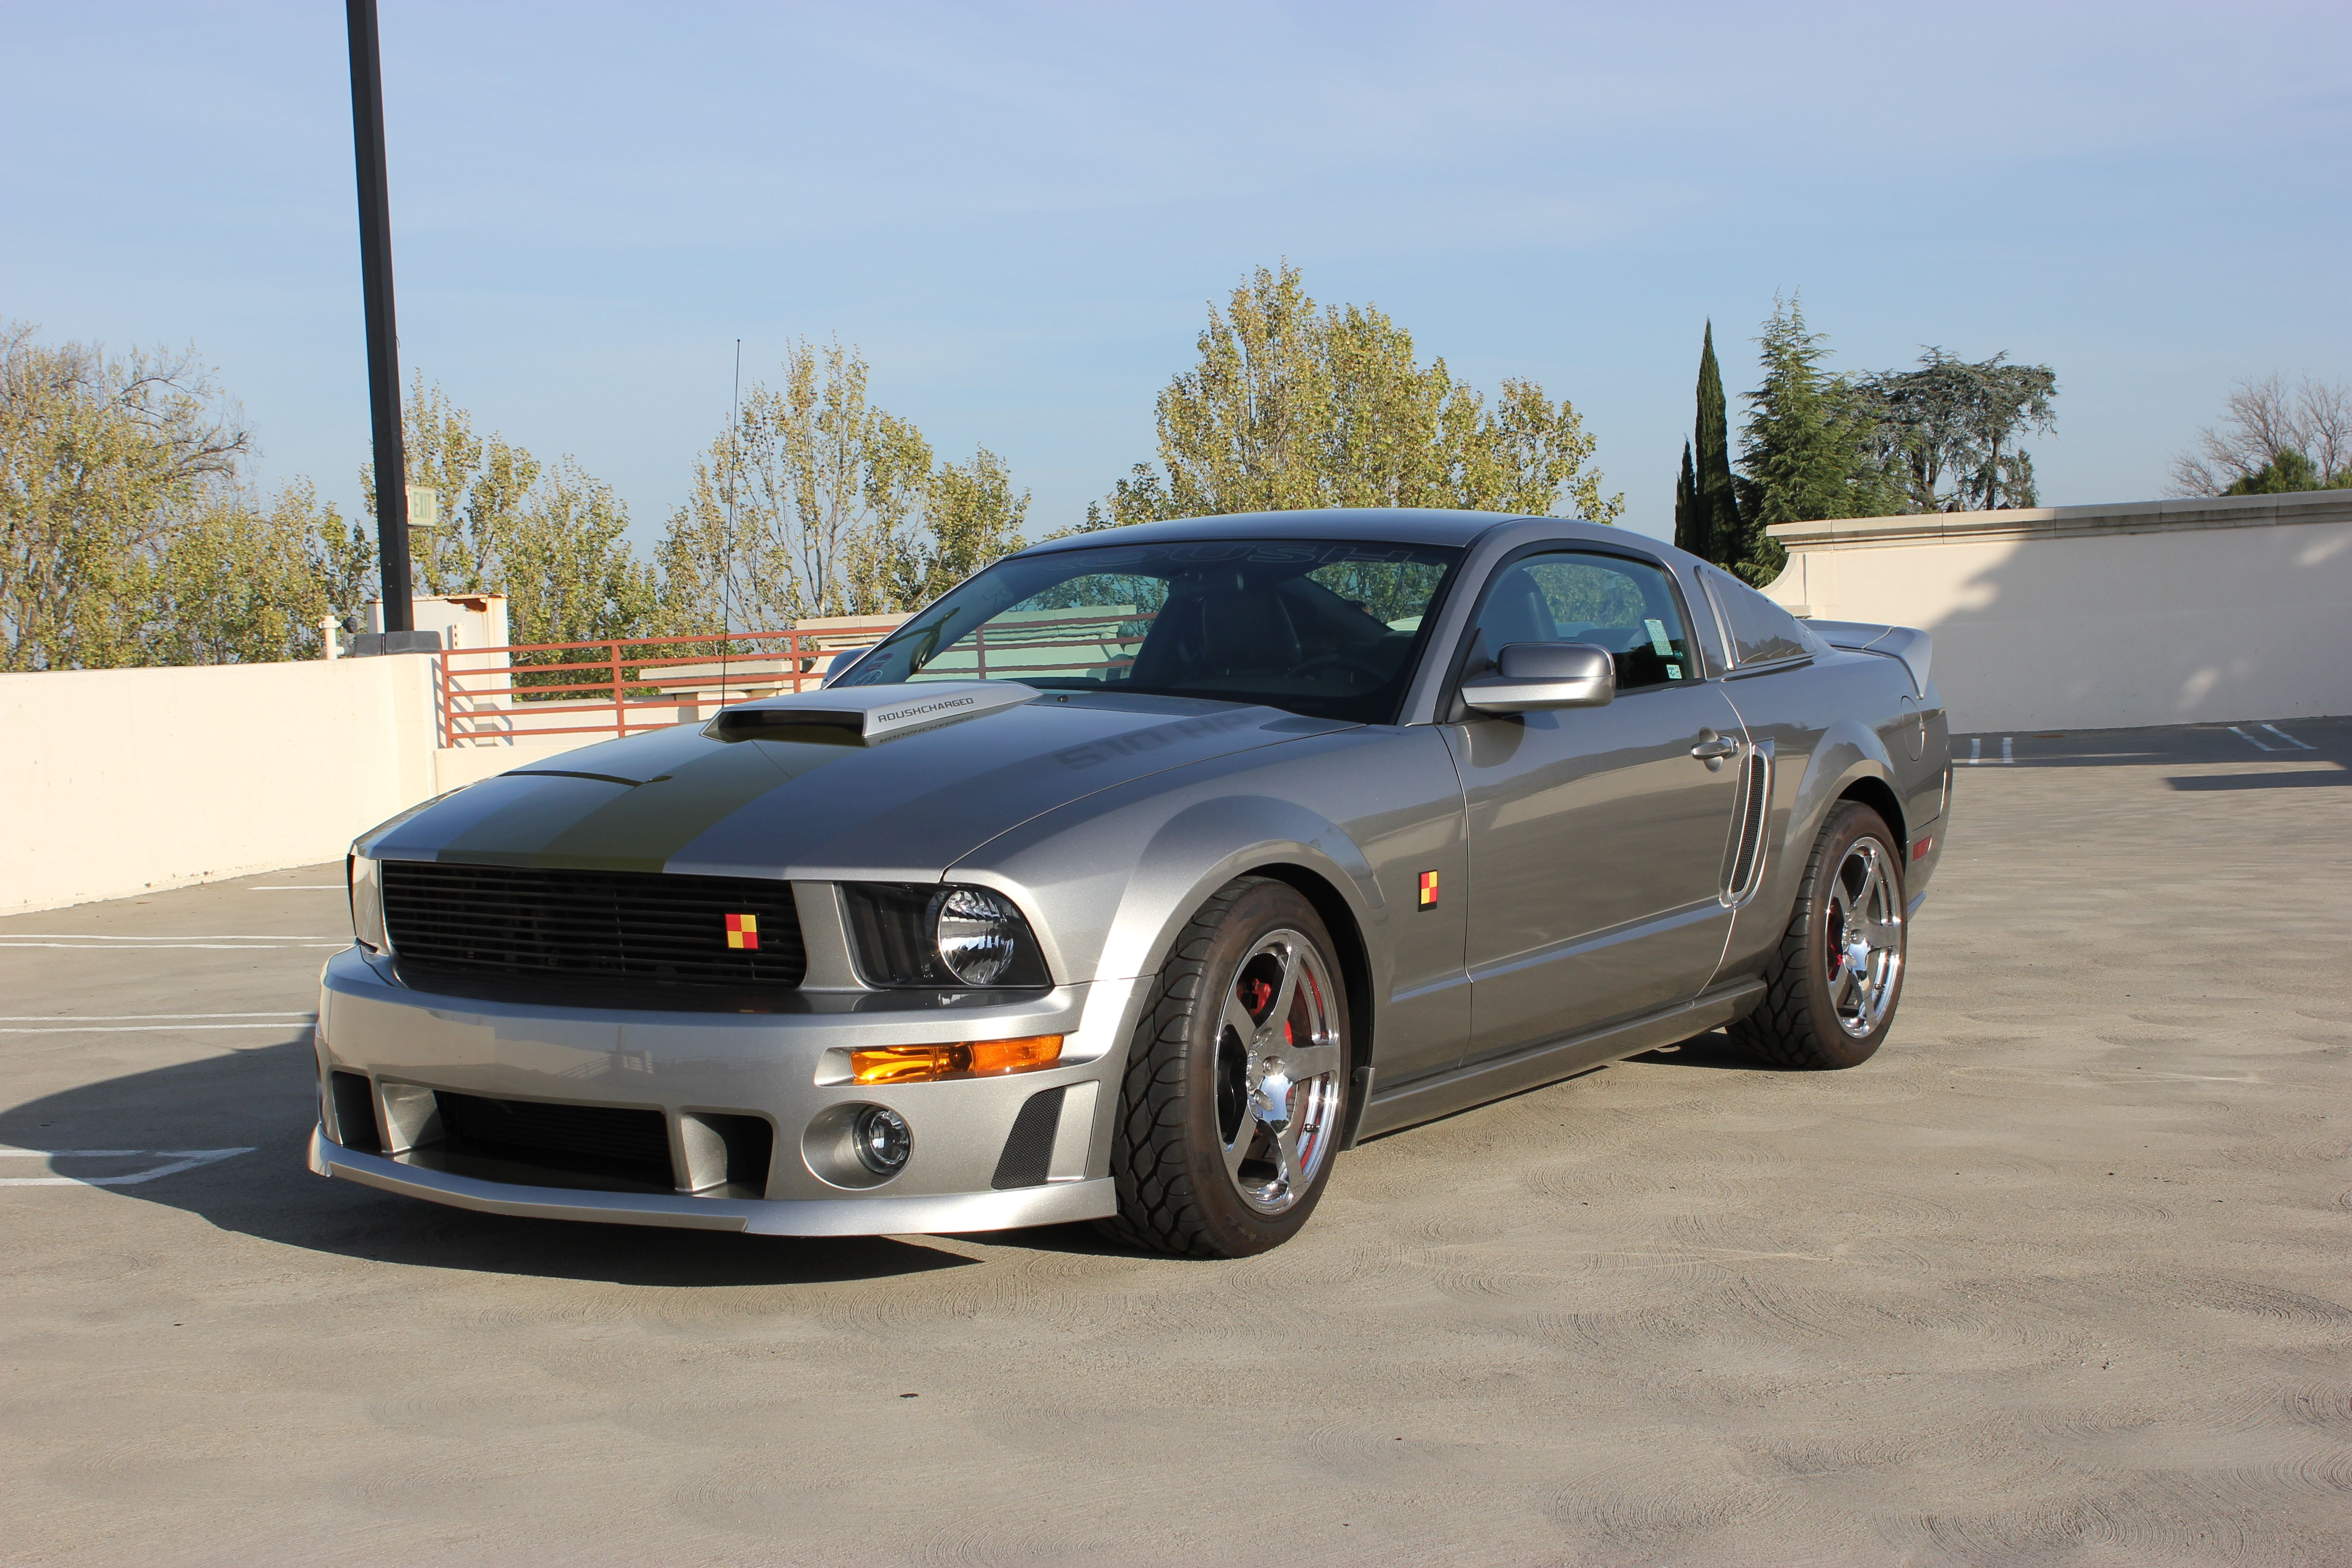 2008 Roush P51 For Sale Used Mustangs For Sale Pinterest